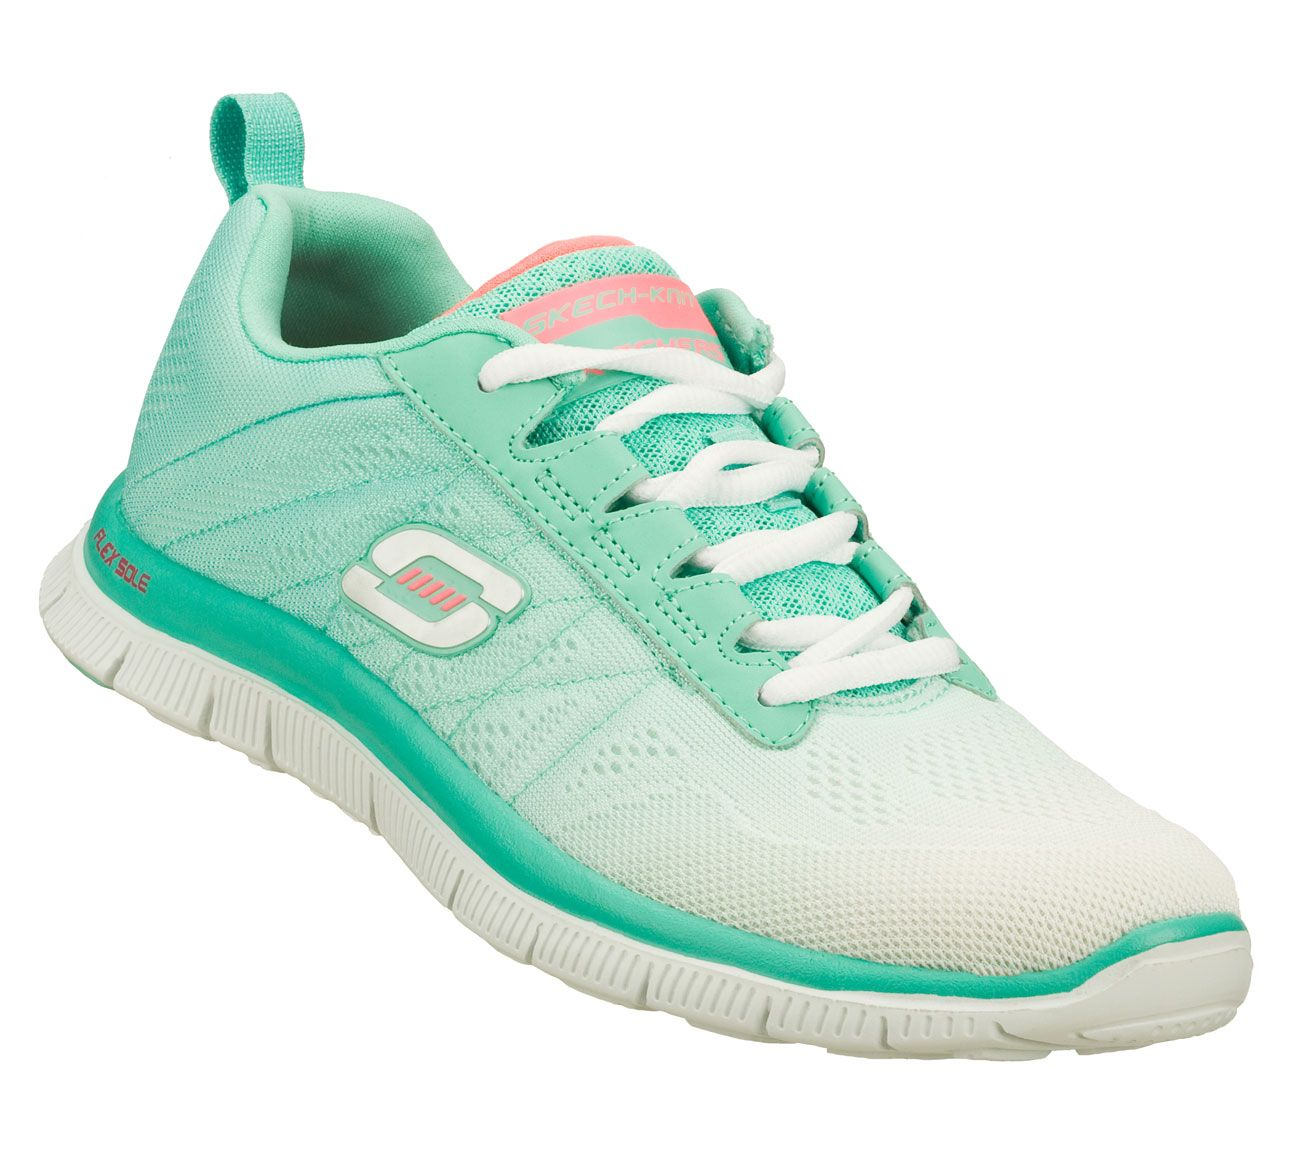 ... fun colors come in the SKECHERS Flex Appeal - New Rival shoe.  Skech-Knit Mesh fabric upper in a lace up sporty training sneaker with  Memory Foam insole.